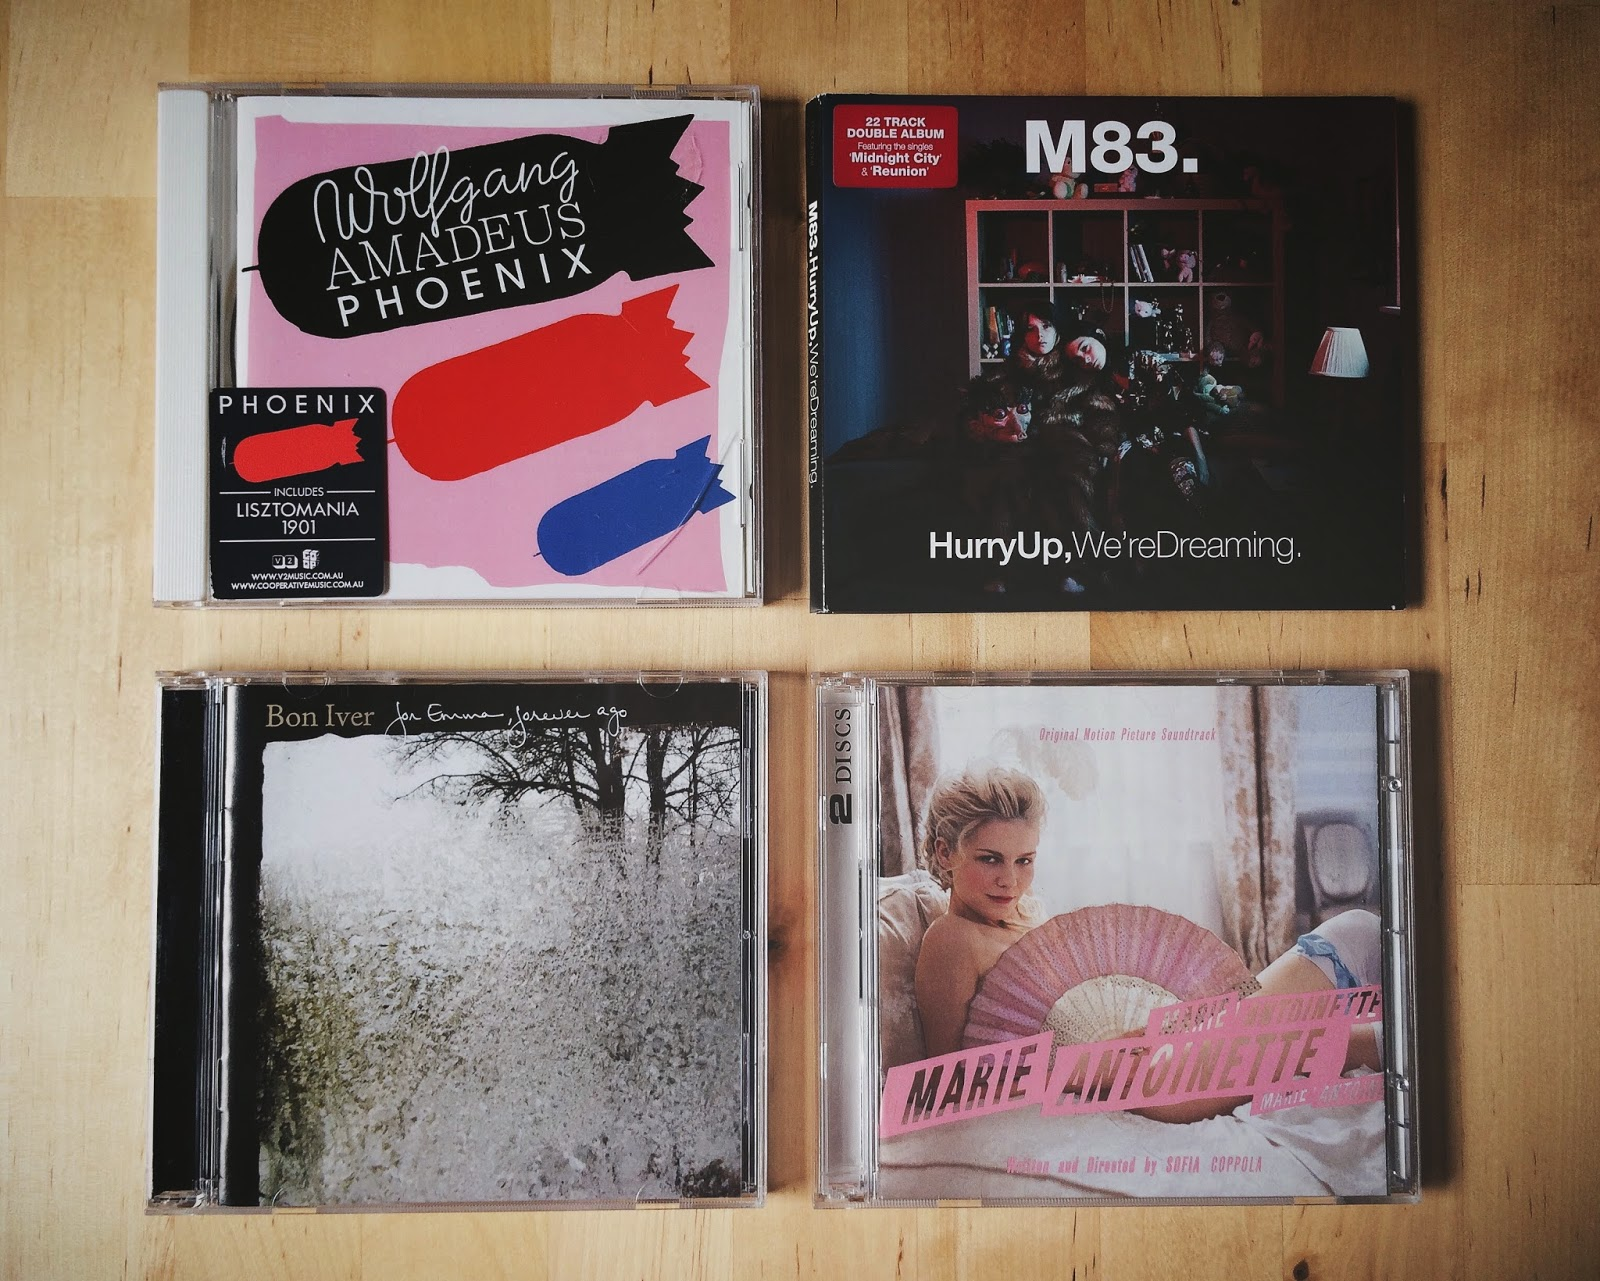 Spring Playlist, Bramble and Thorn, Marie Antoinette, M83, Music, Phoenix, Bon Iver